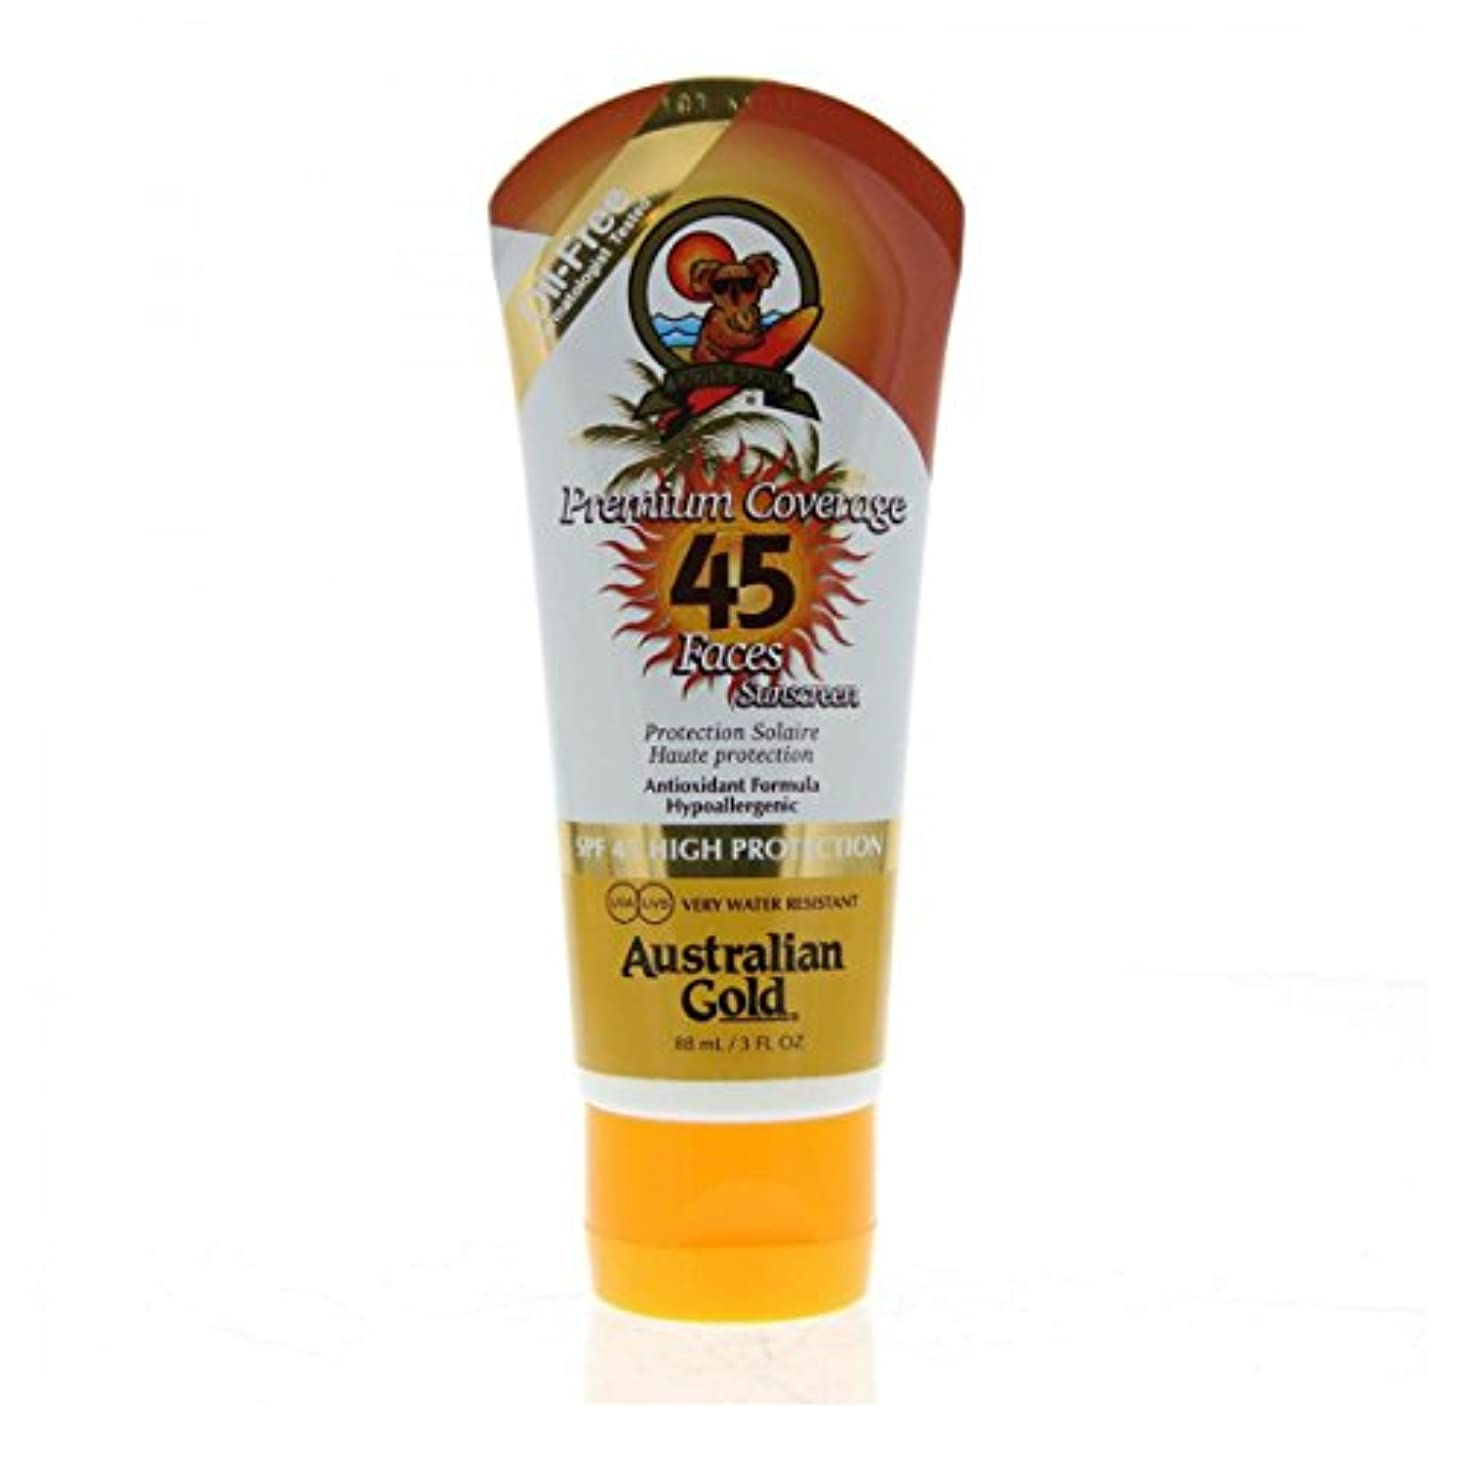 スパイ政治的観察Australian Gold Premium Coverage Face Spf45 88ml [並行輸入品]